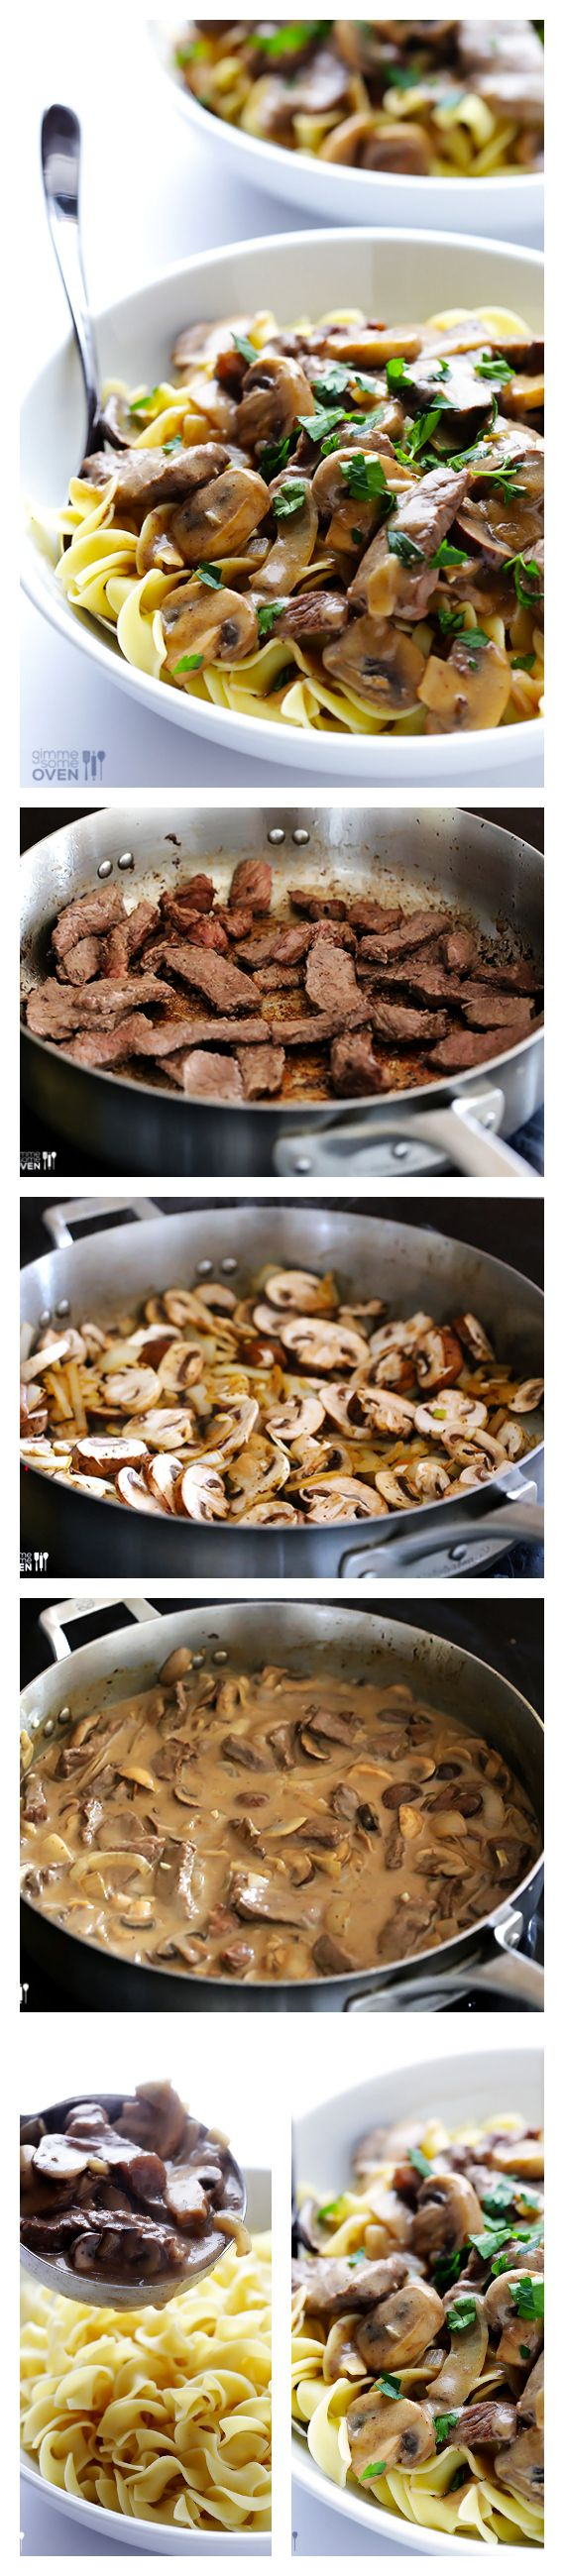 Beef Stroganoff -- a classic comfort food dish that's lightened up and ready to go in 30 minutes.